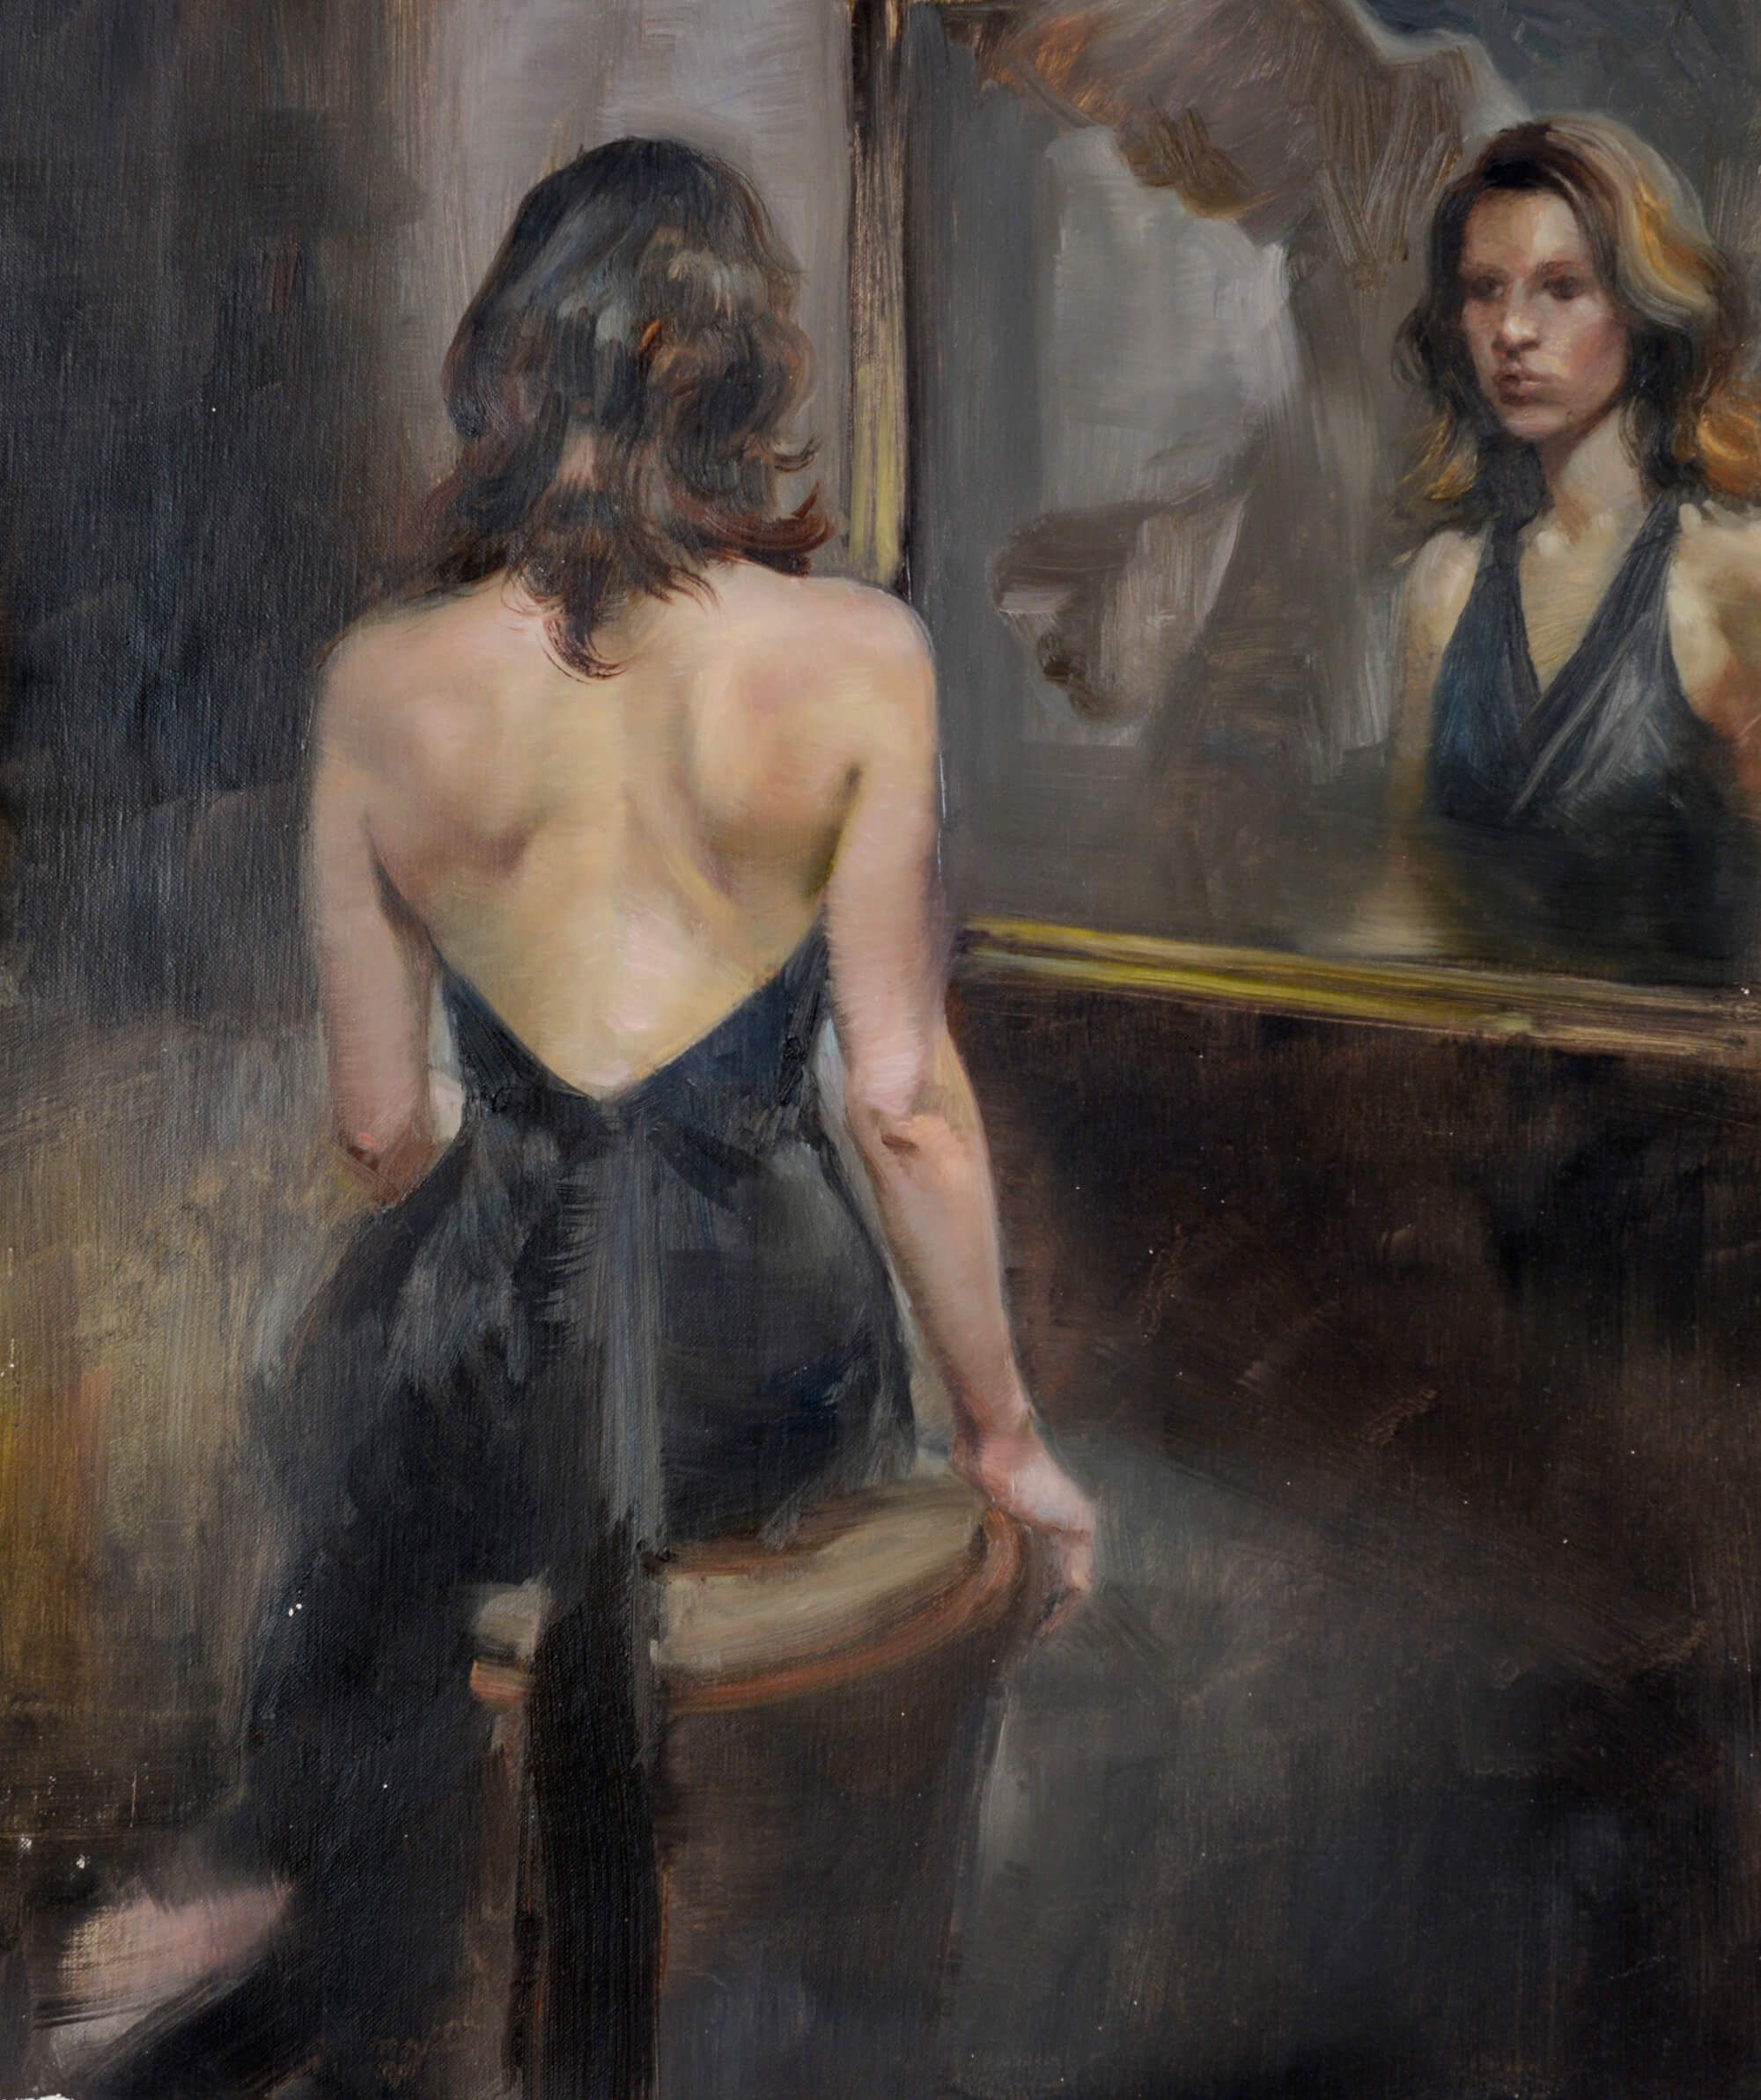 Figurative oil painting and portrait of a young woman wearing a black halter dress seated in front of a mirror